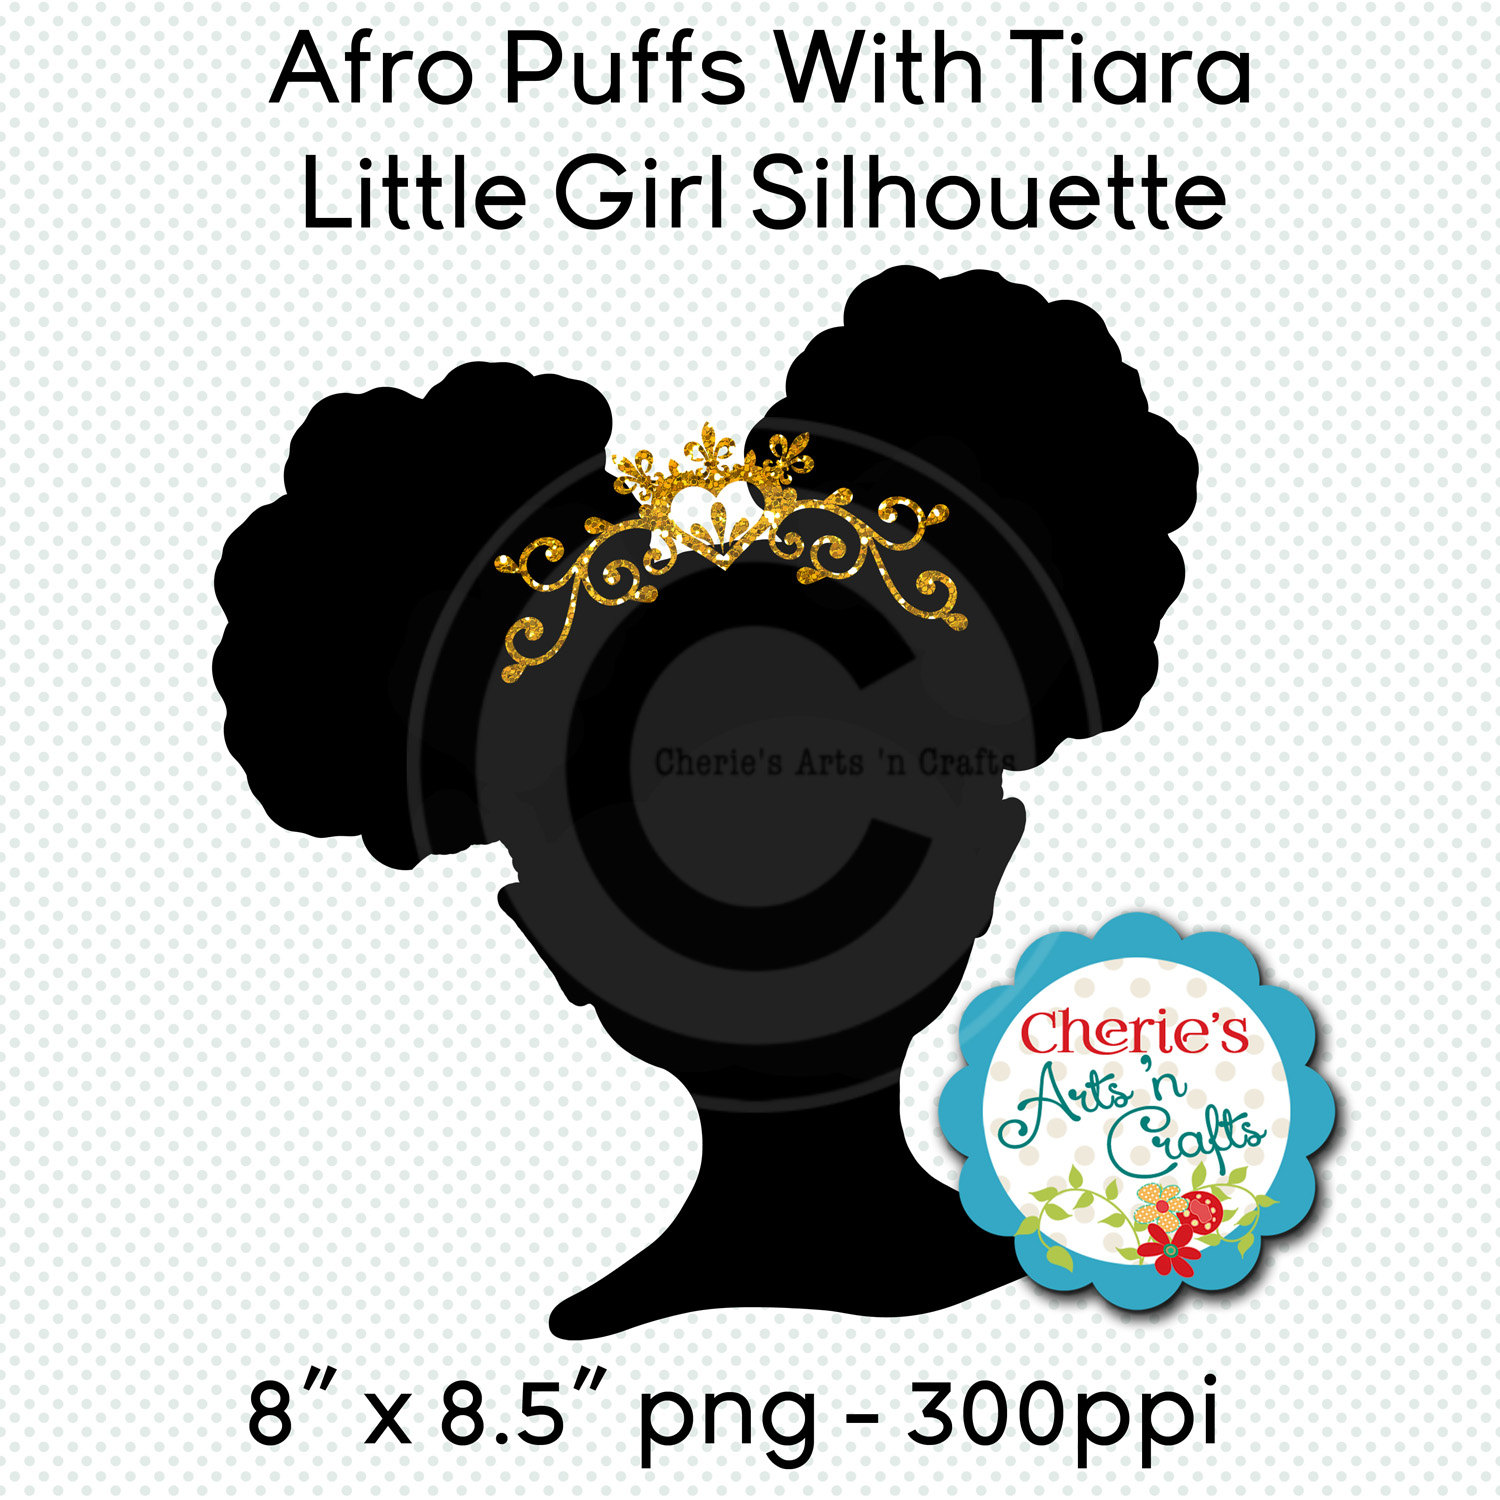 1500x1500 Little Girl Silhouette African Girl Silhouette Natural Hair